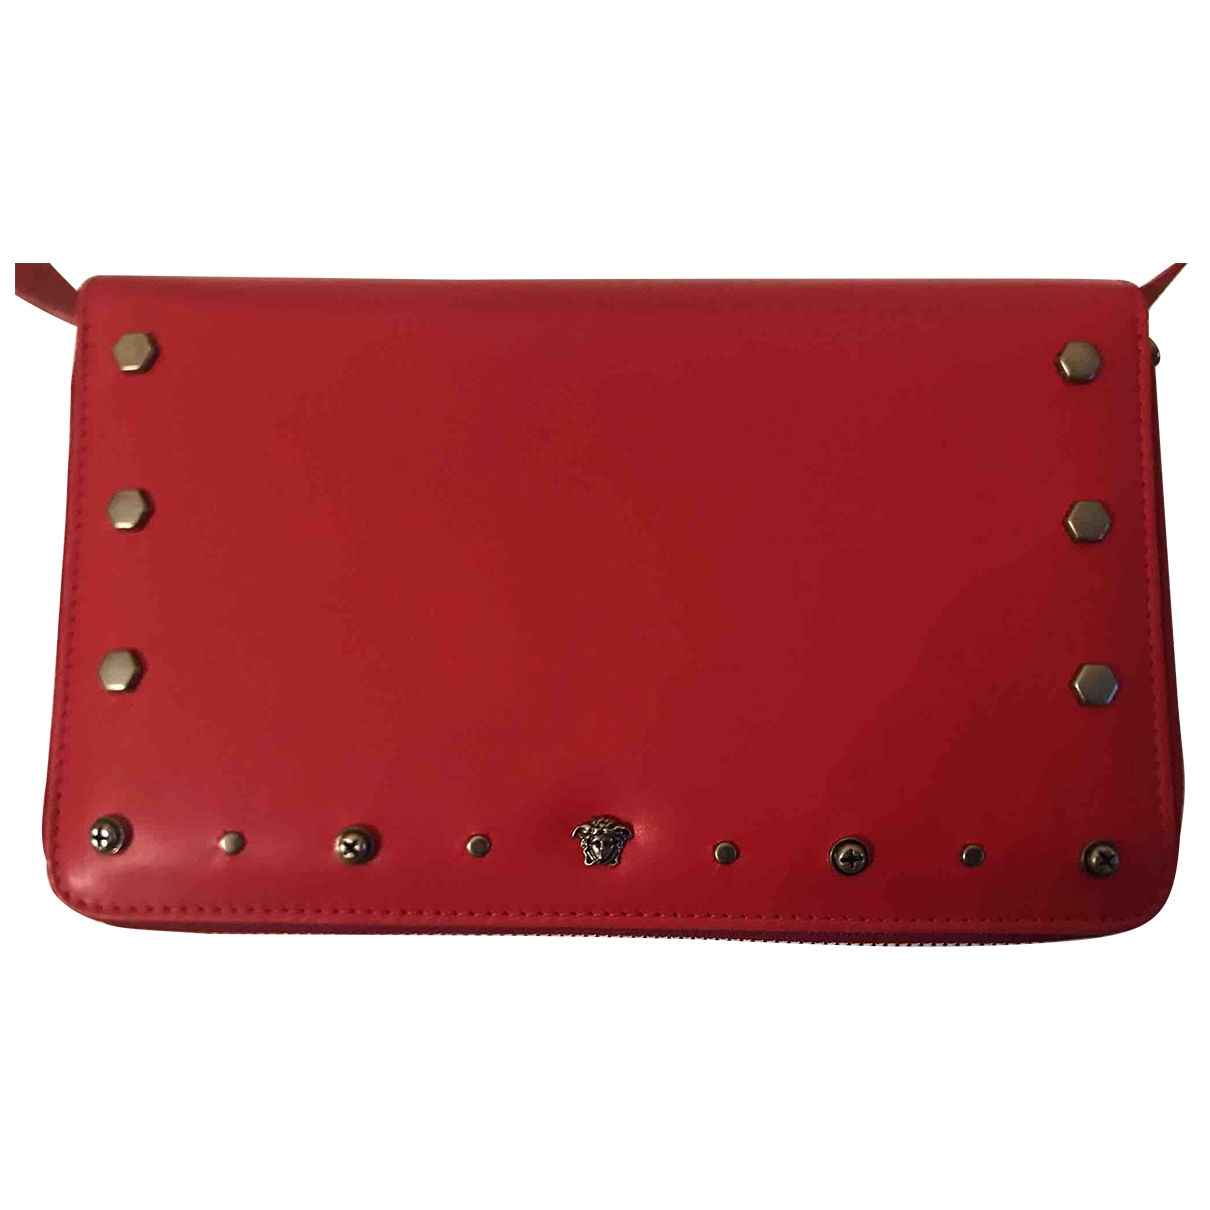 Versace \N Red Leather Clutch bag for Women \N